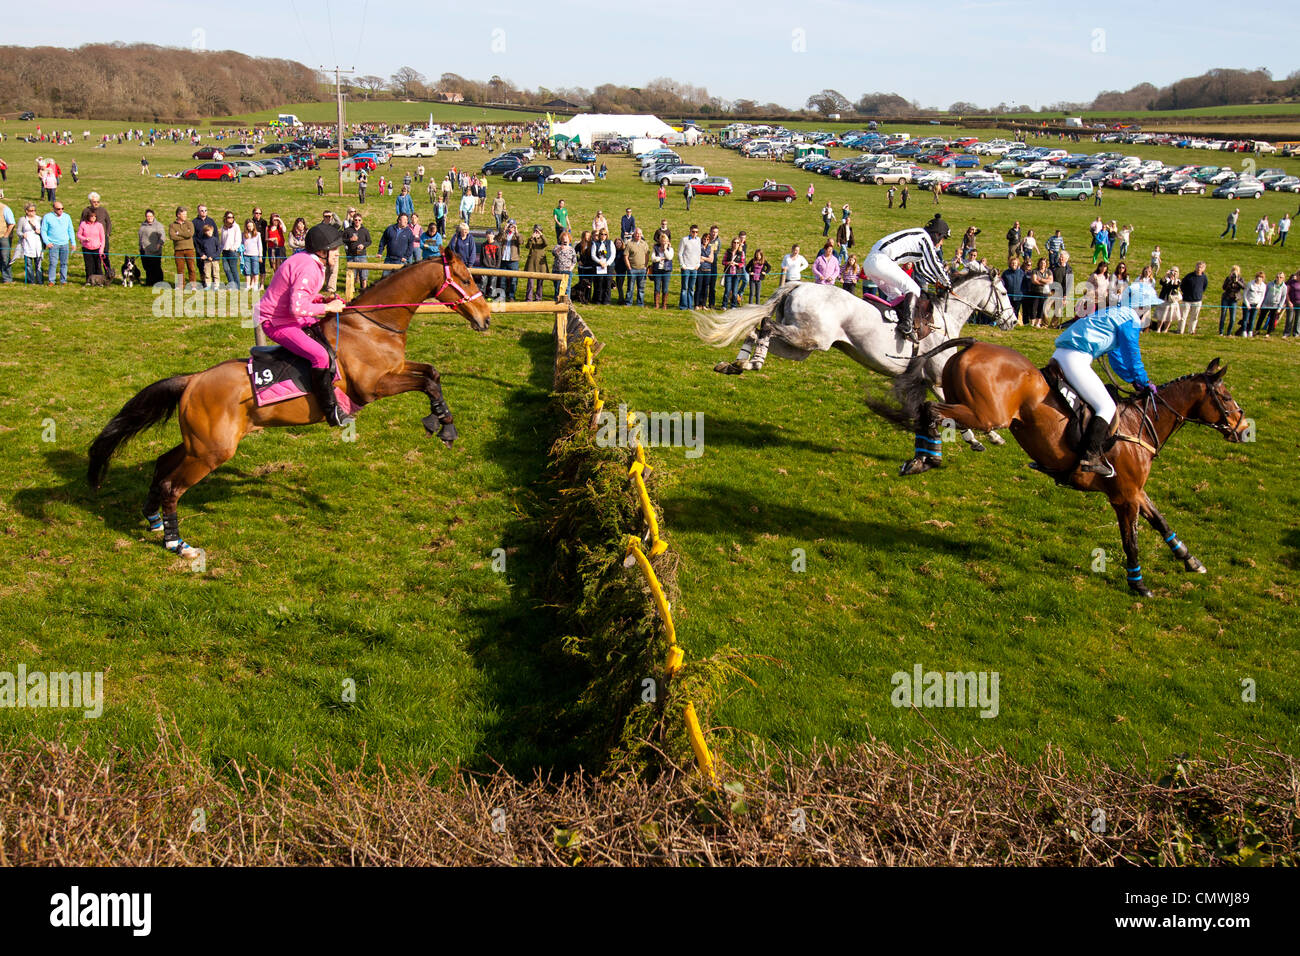 Isle of Wight England UK, Ryde, Apse Heath, Scurry, Grand National Stock Photo